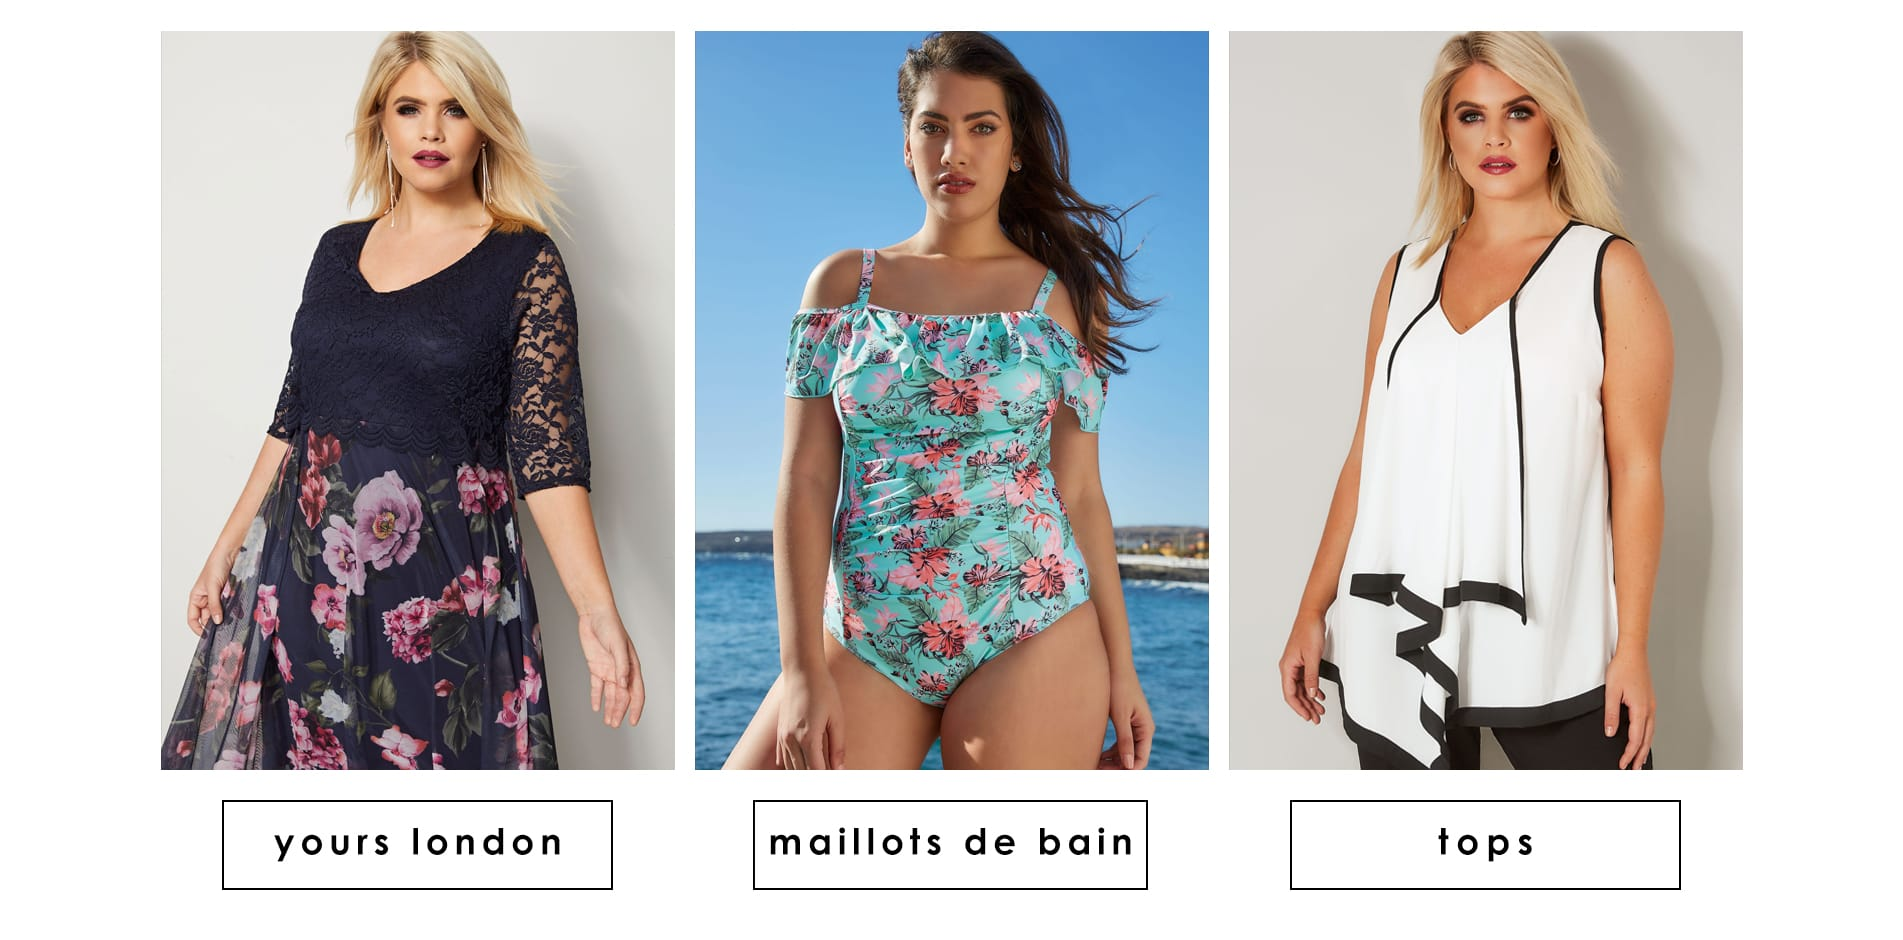 Yours london Maillots de Bain et tops